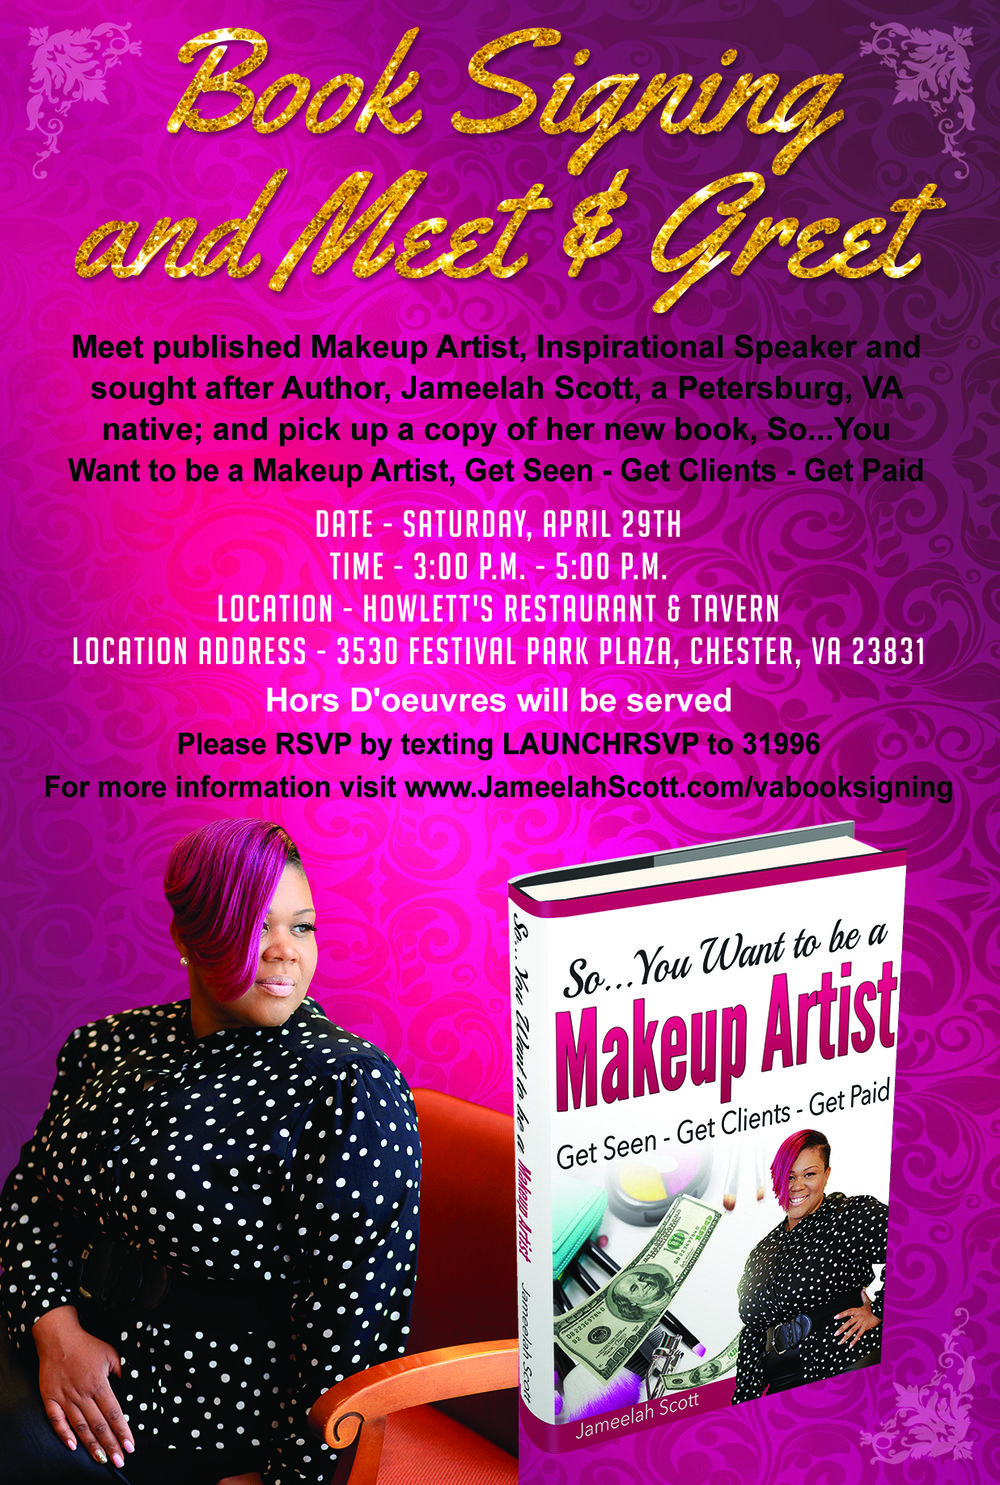 Jameelah Scott Makeup Artistry Book Signing and Meet & Greet